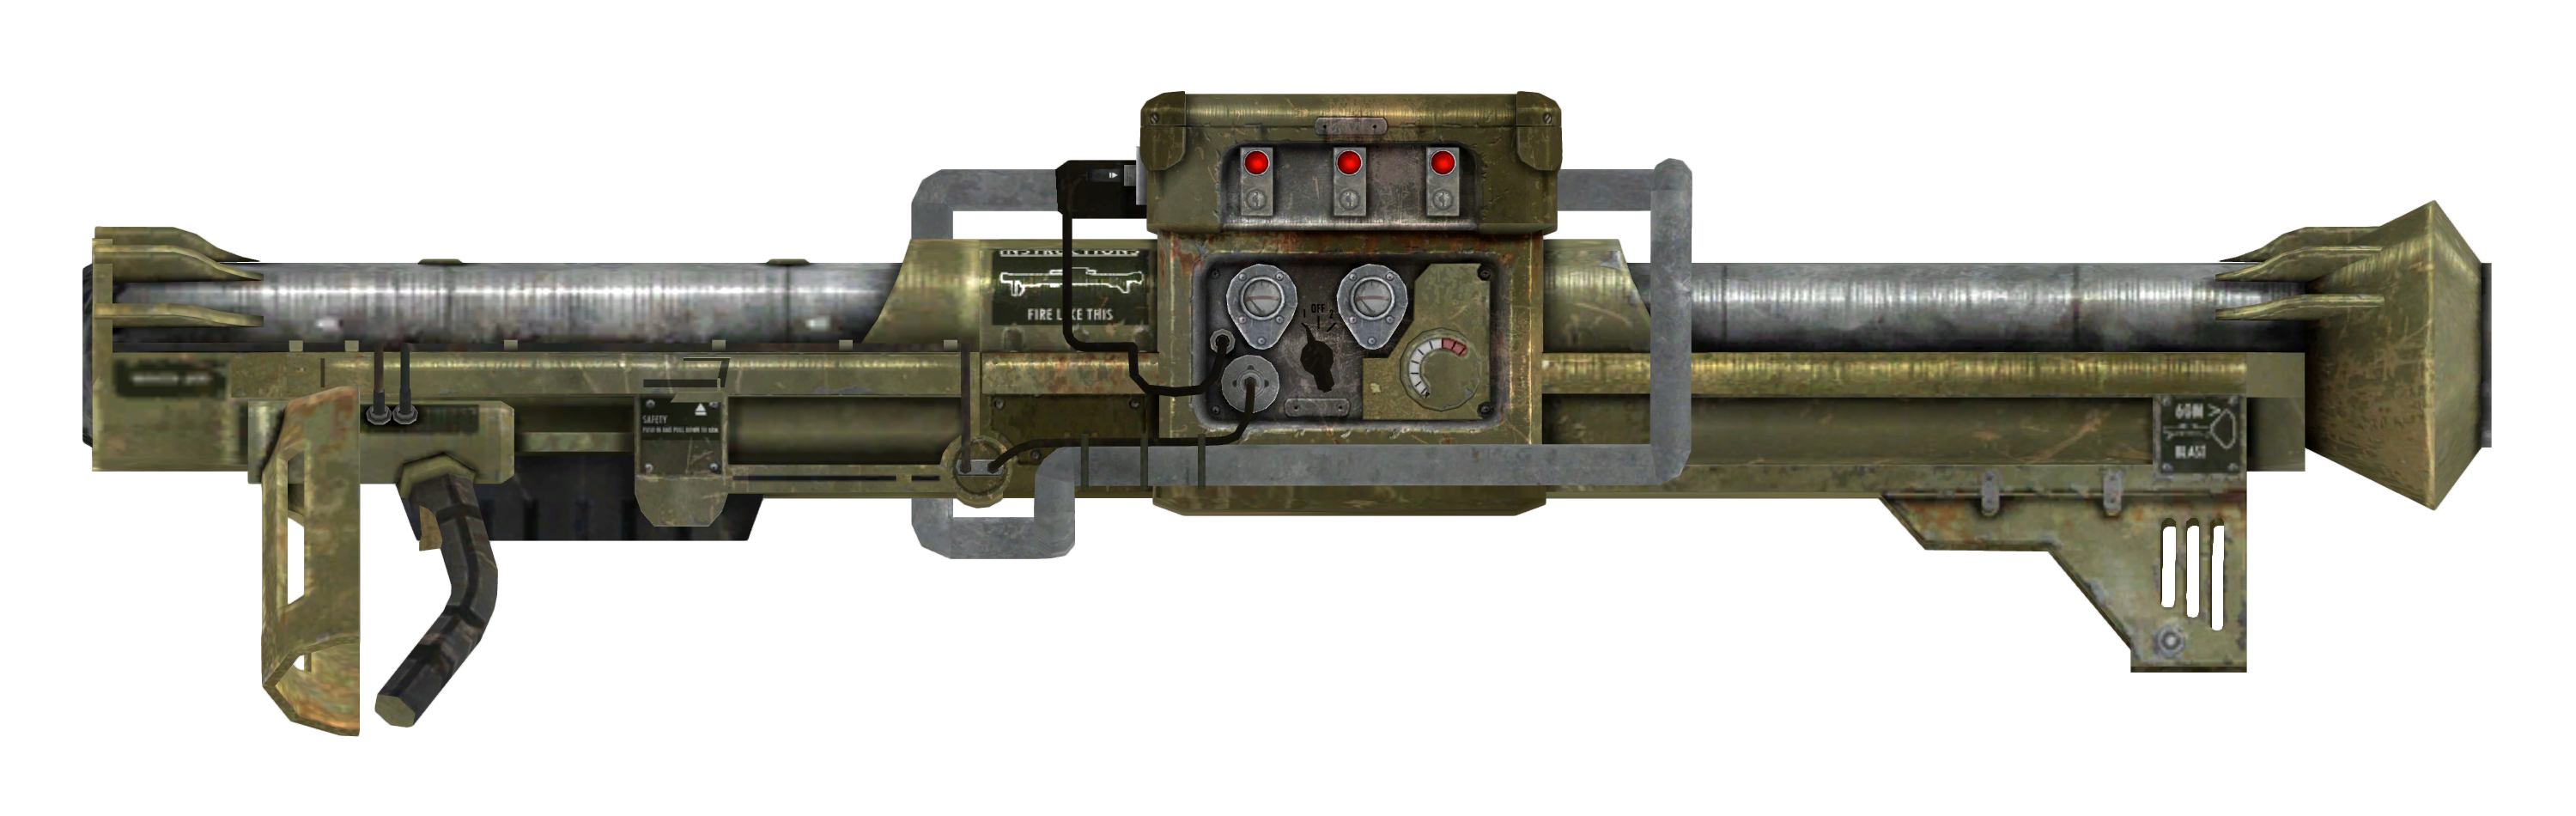 Lanzamisses (Fallout 3)